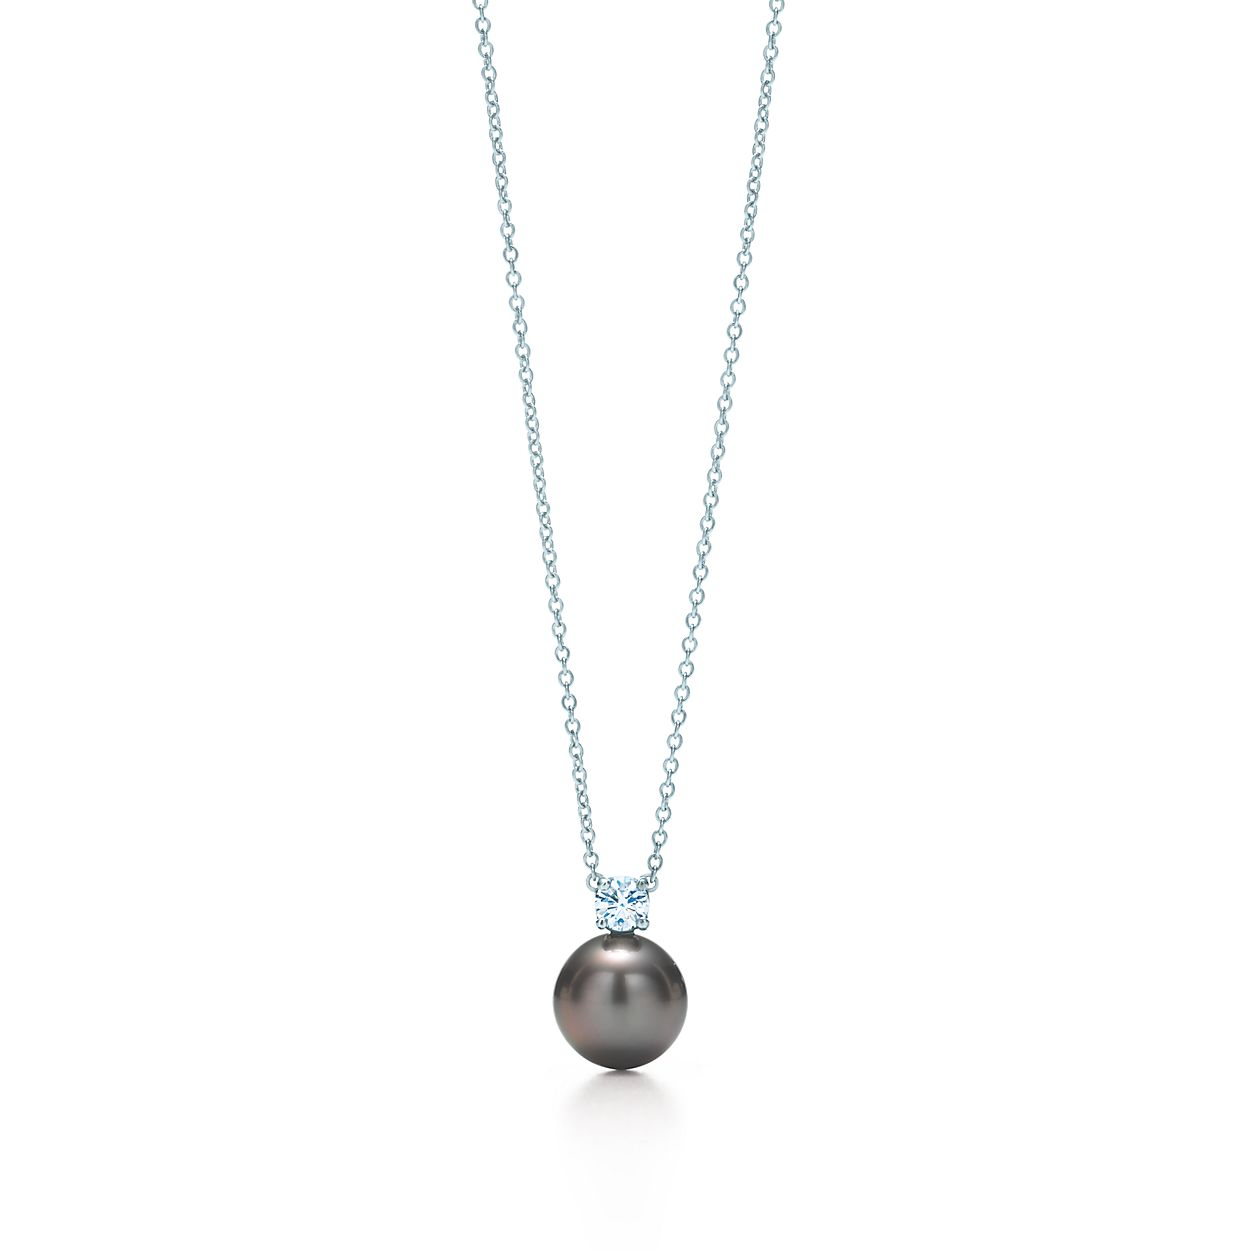 tahitian mosaic pendant collection pearl pearls product